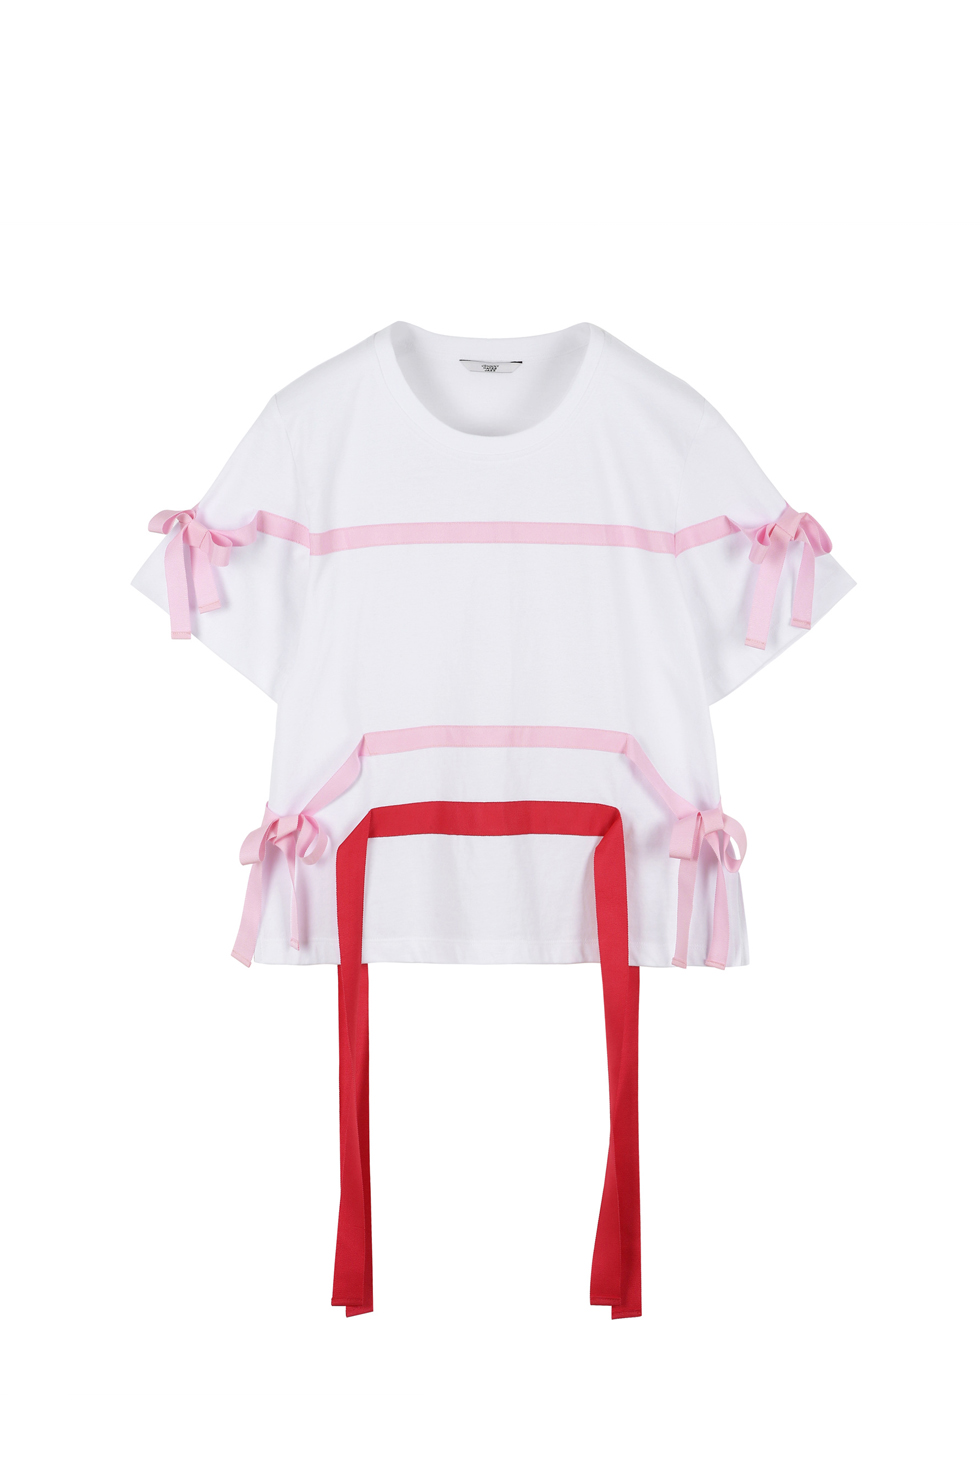 RIBBON TAPE T-SHIRTS - WHITE